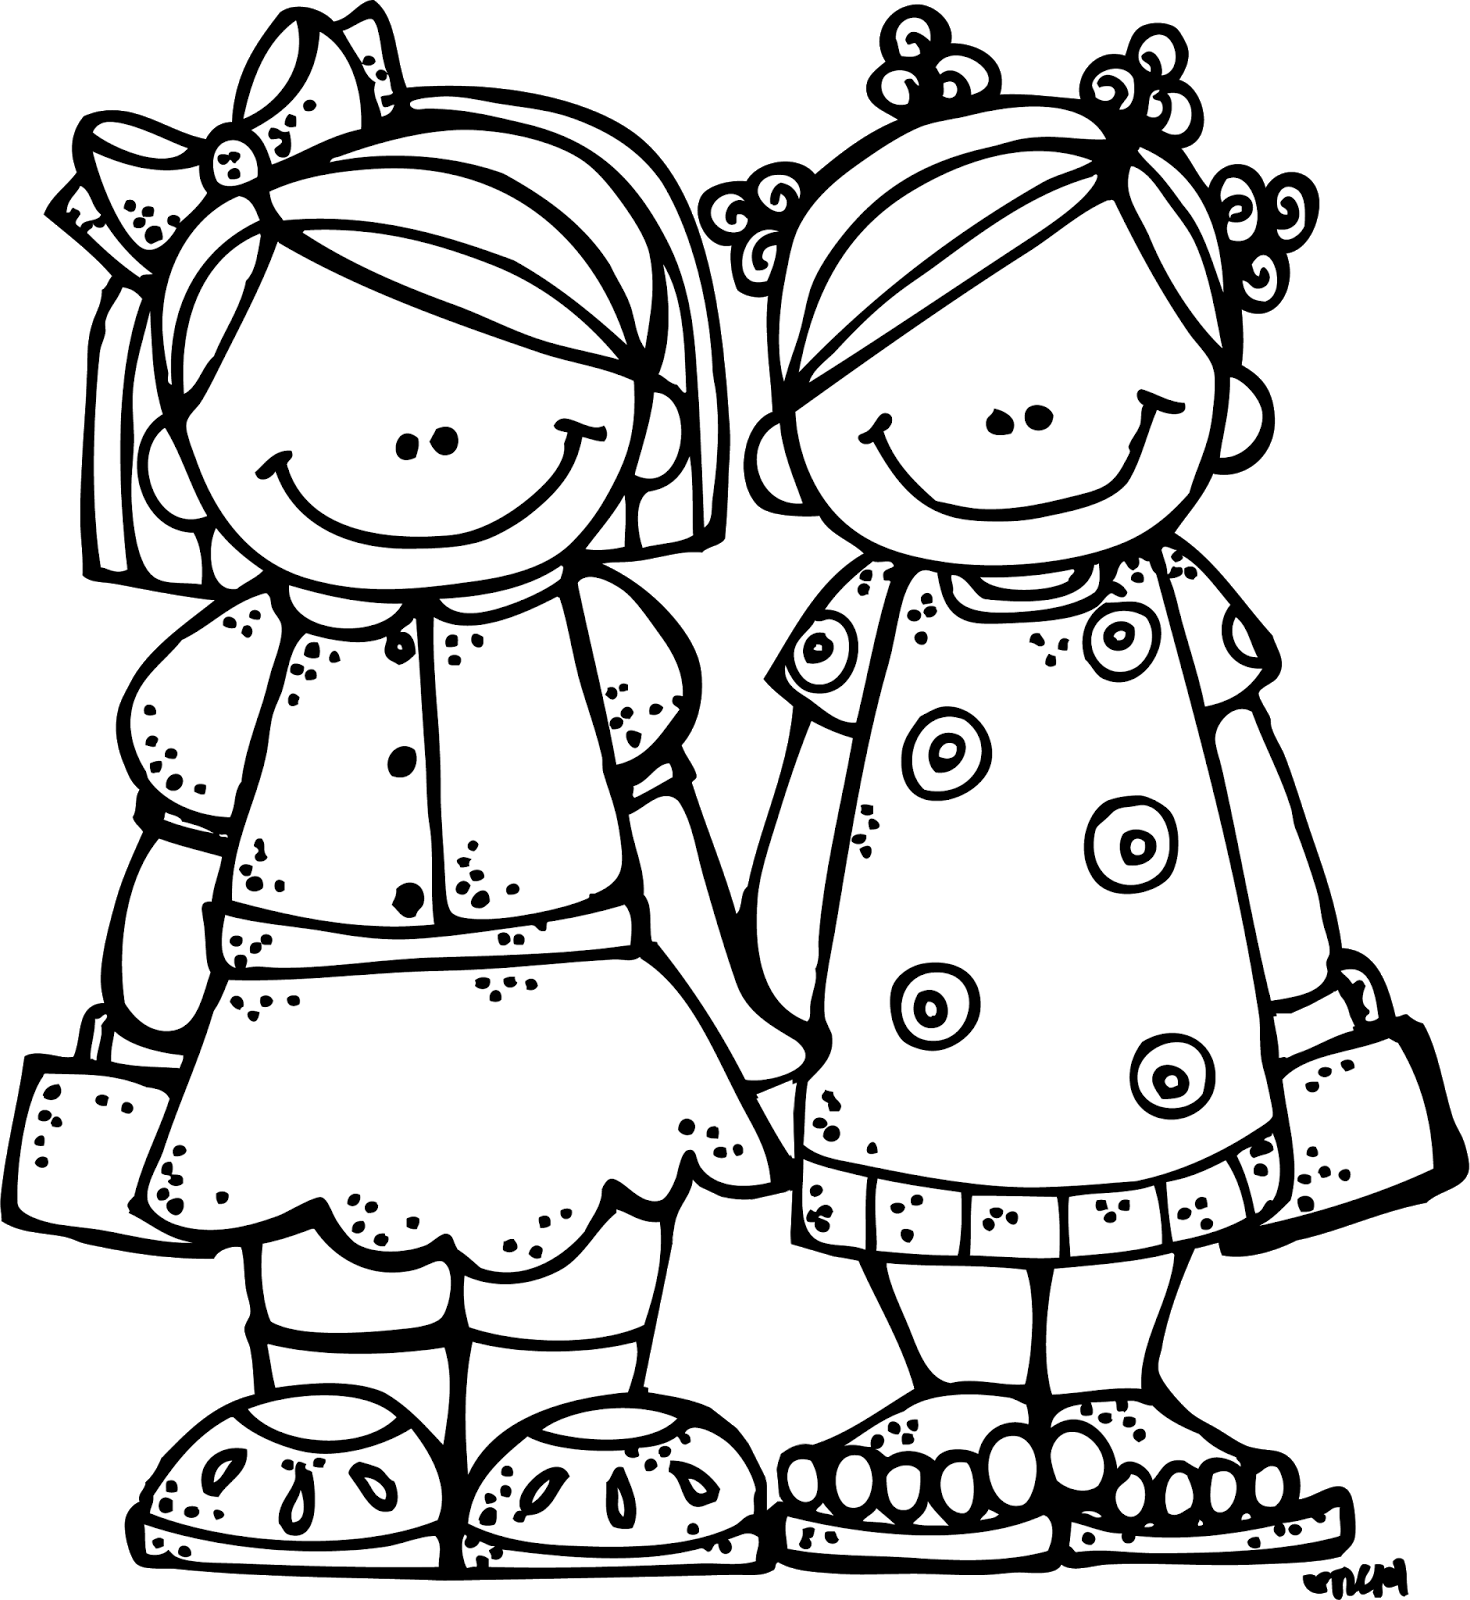 Drawing friendship best friends together. Siblings png black and